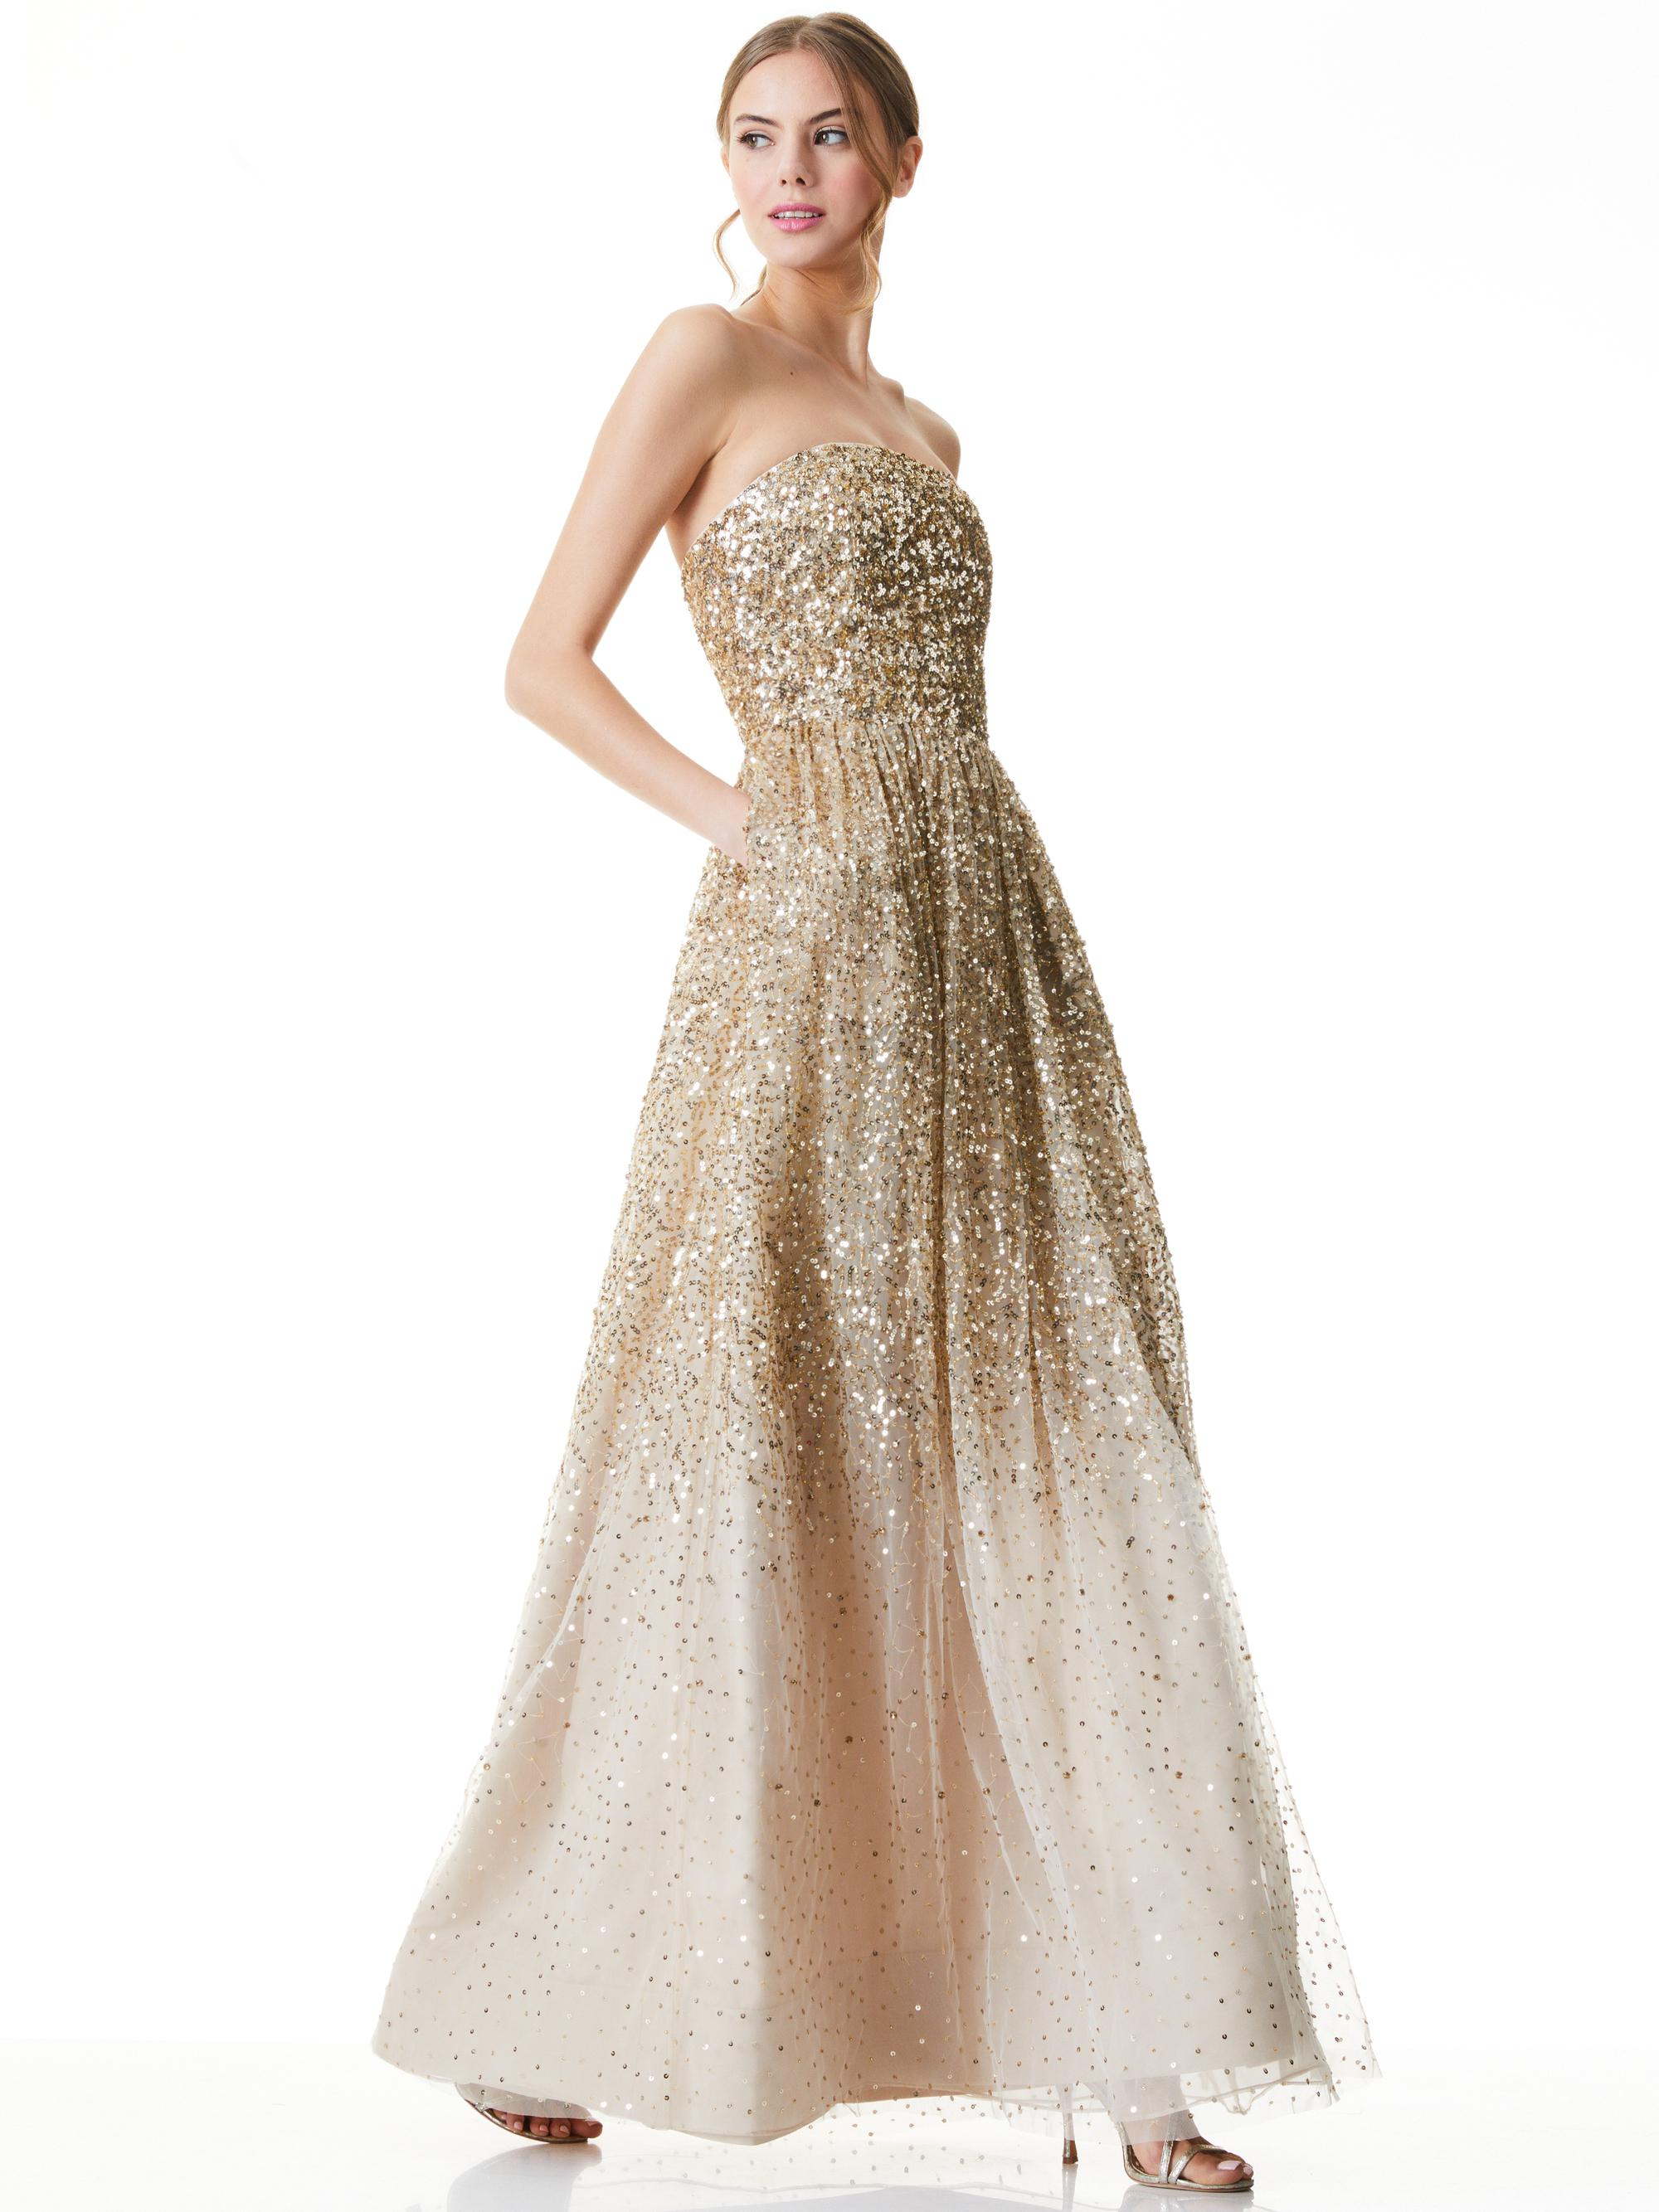 DAISY SEQUIN STRAPLESS GOWN